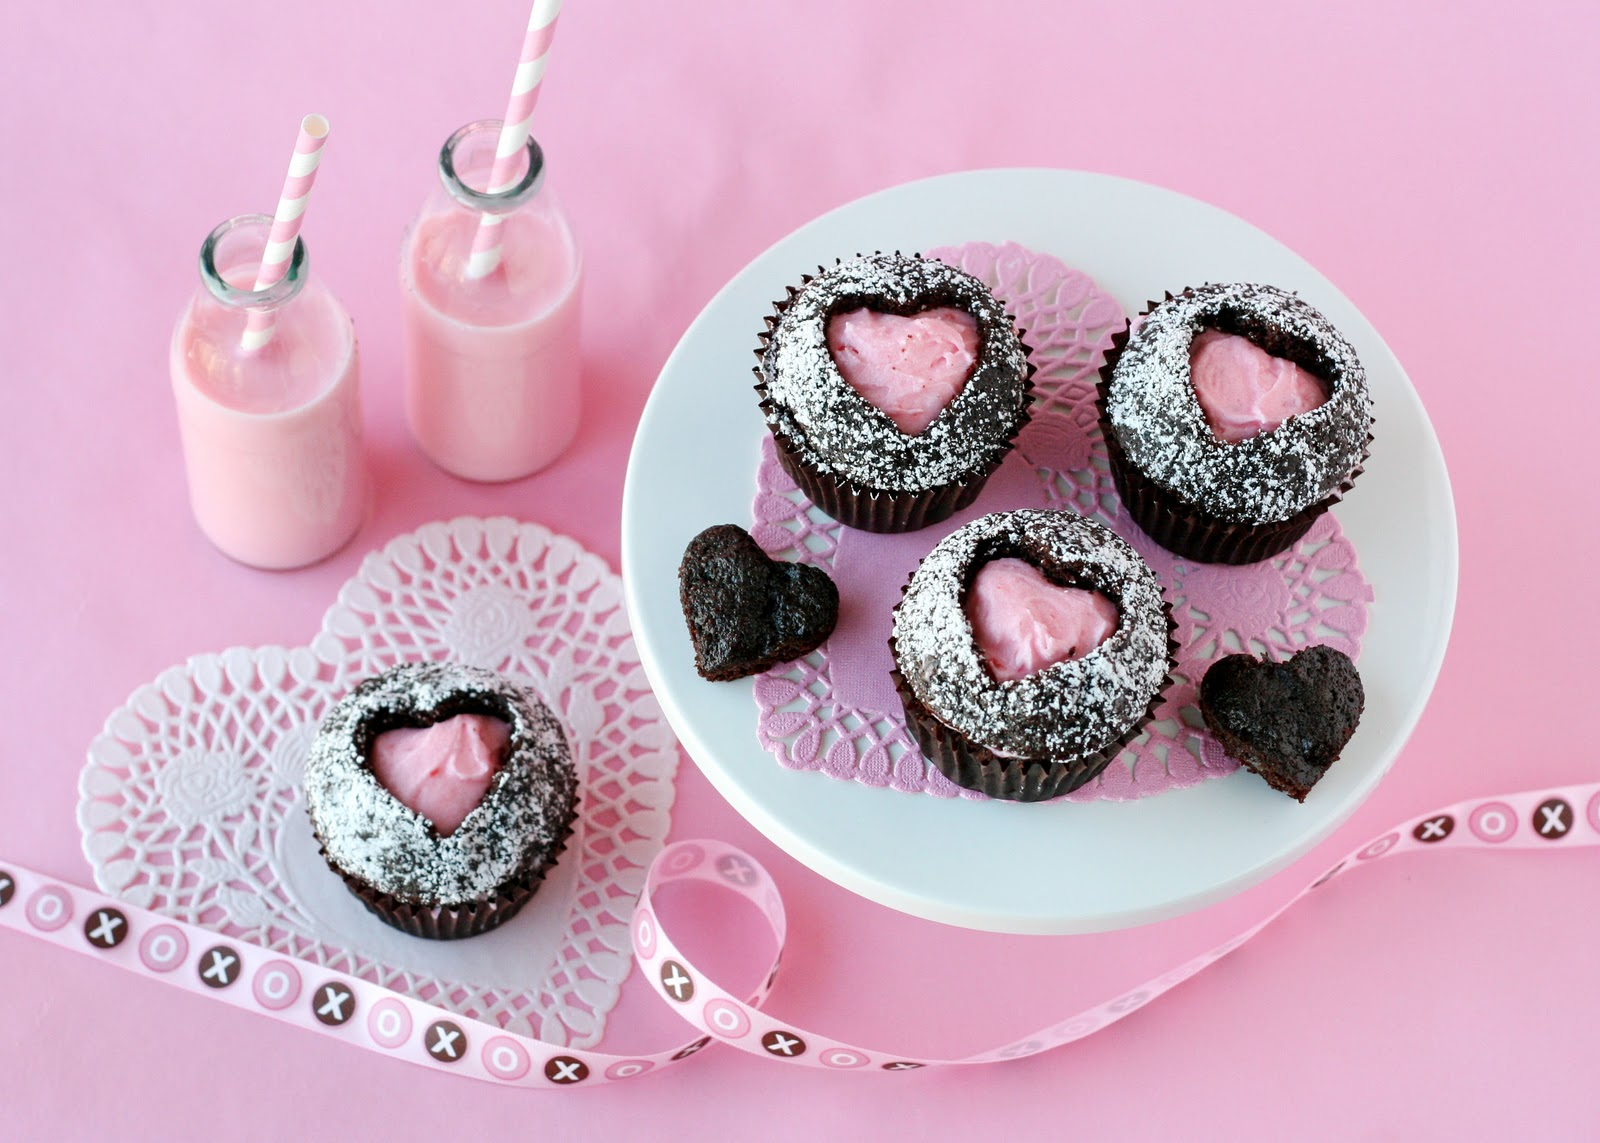 Sweet Heart Cupcakes Glorious Treats